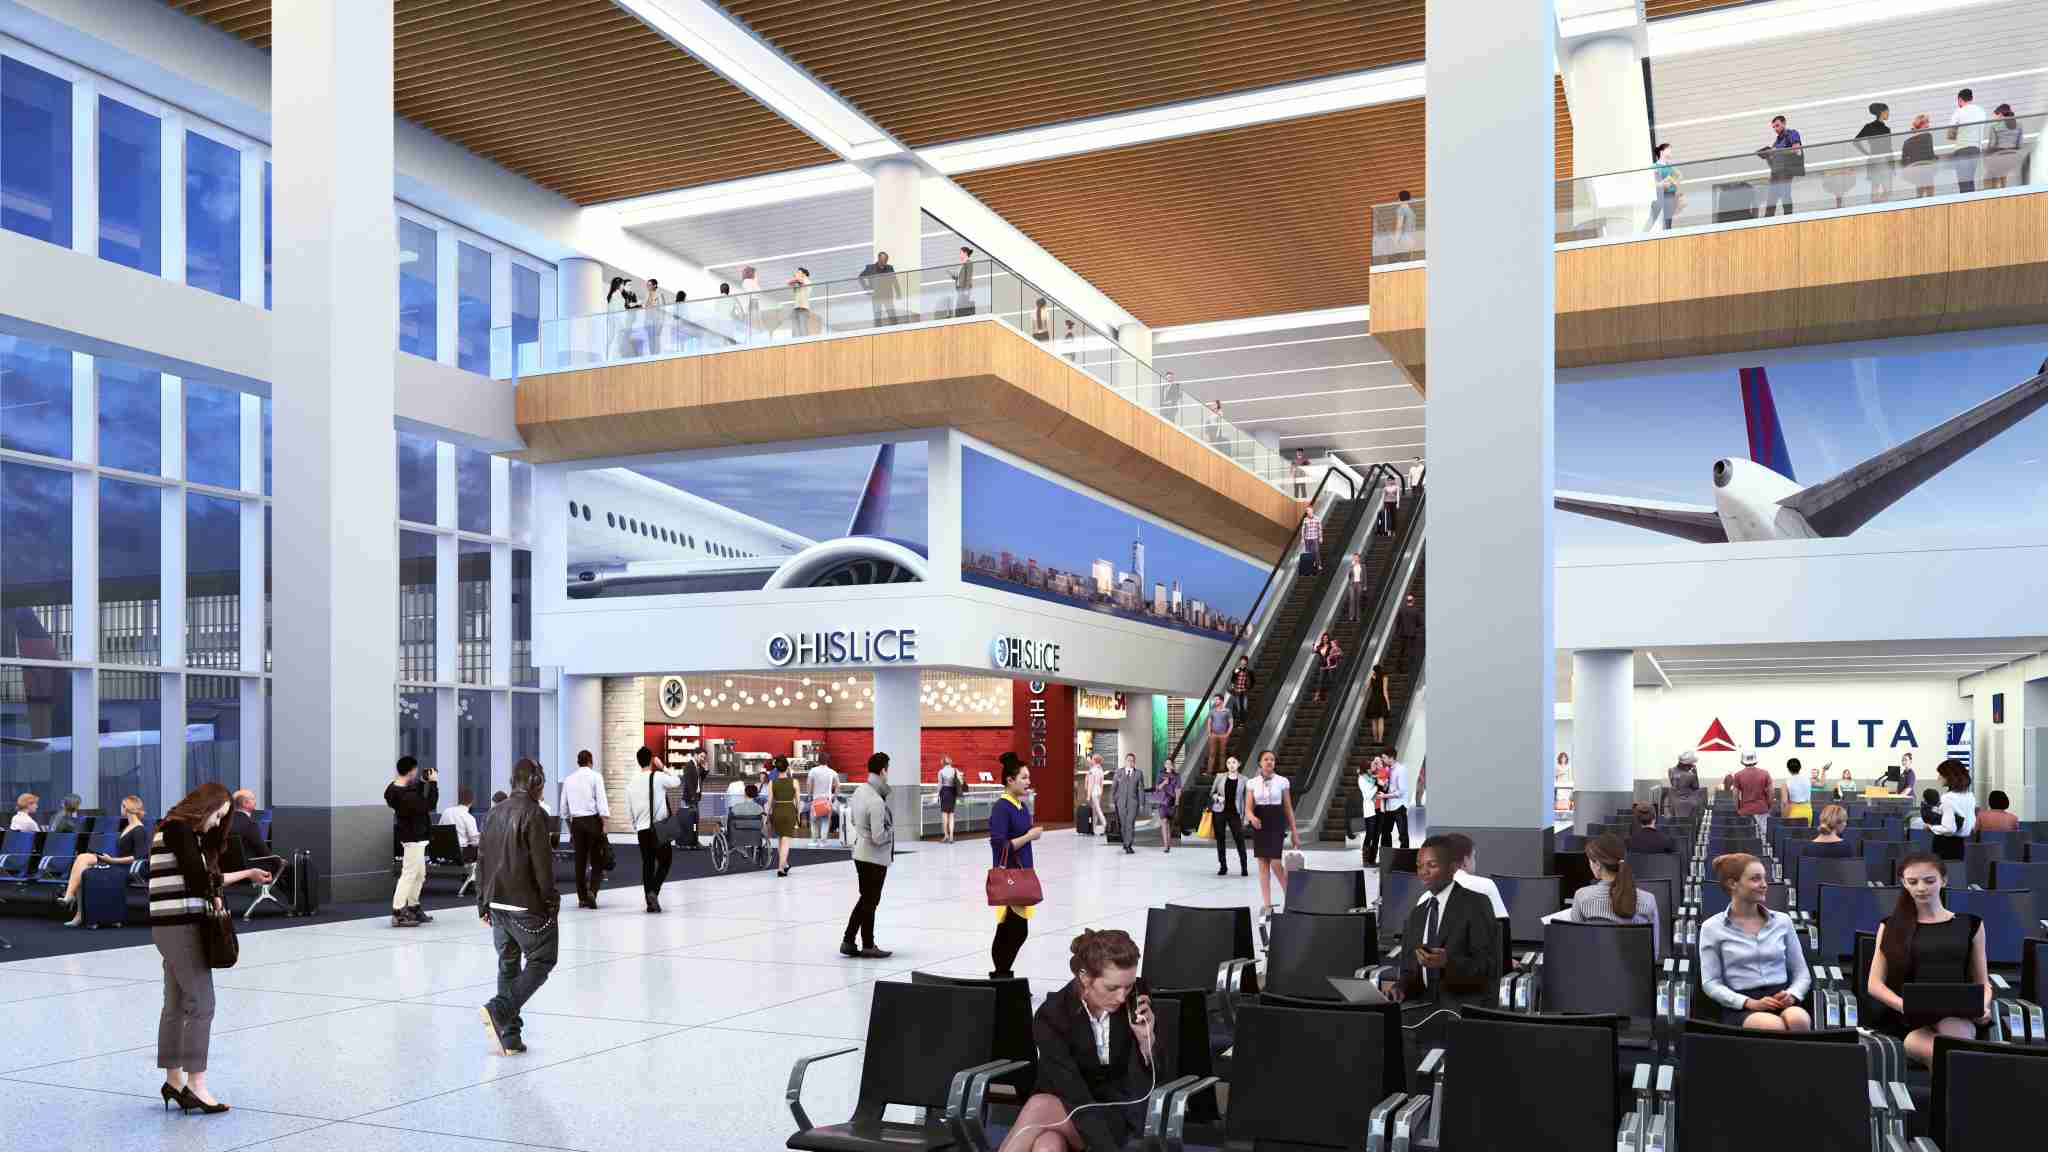 A rendering of the interior of the new concourse G at New York LaGuardia. Courtesy of Delta Air Lines.